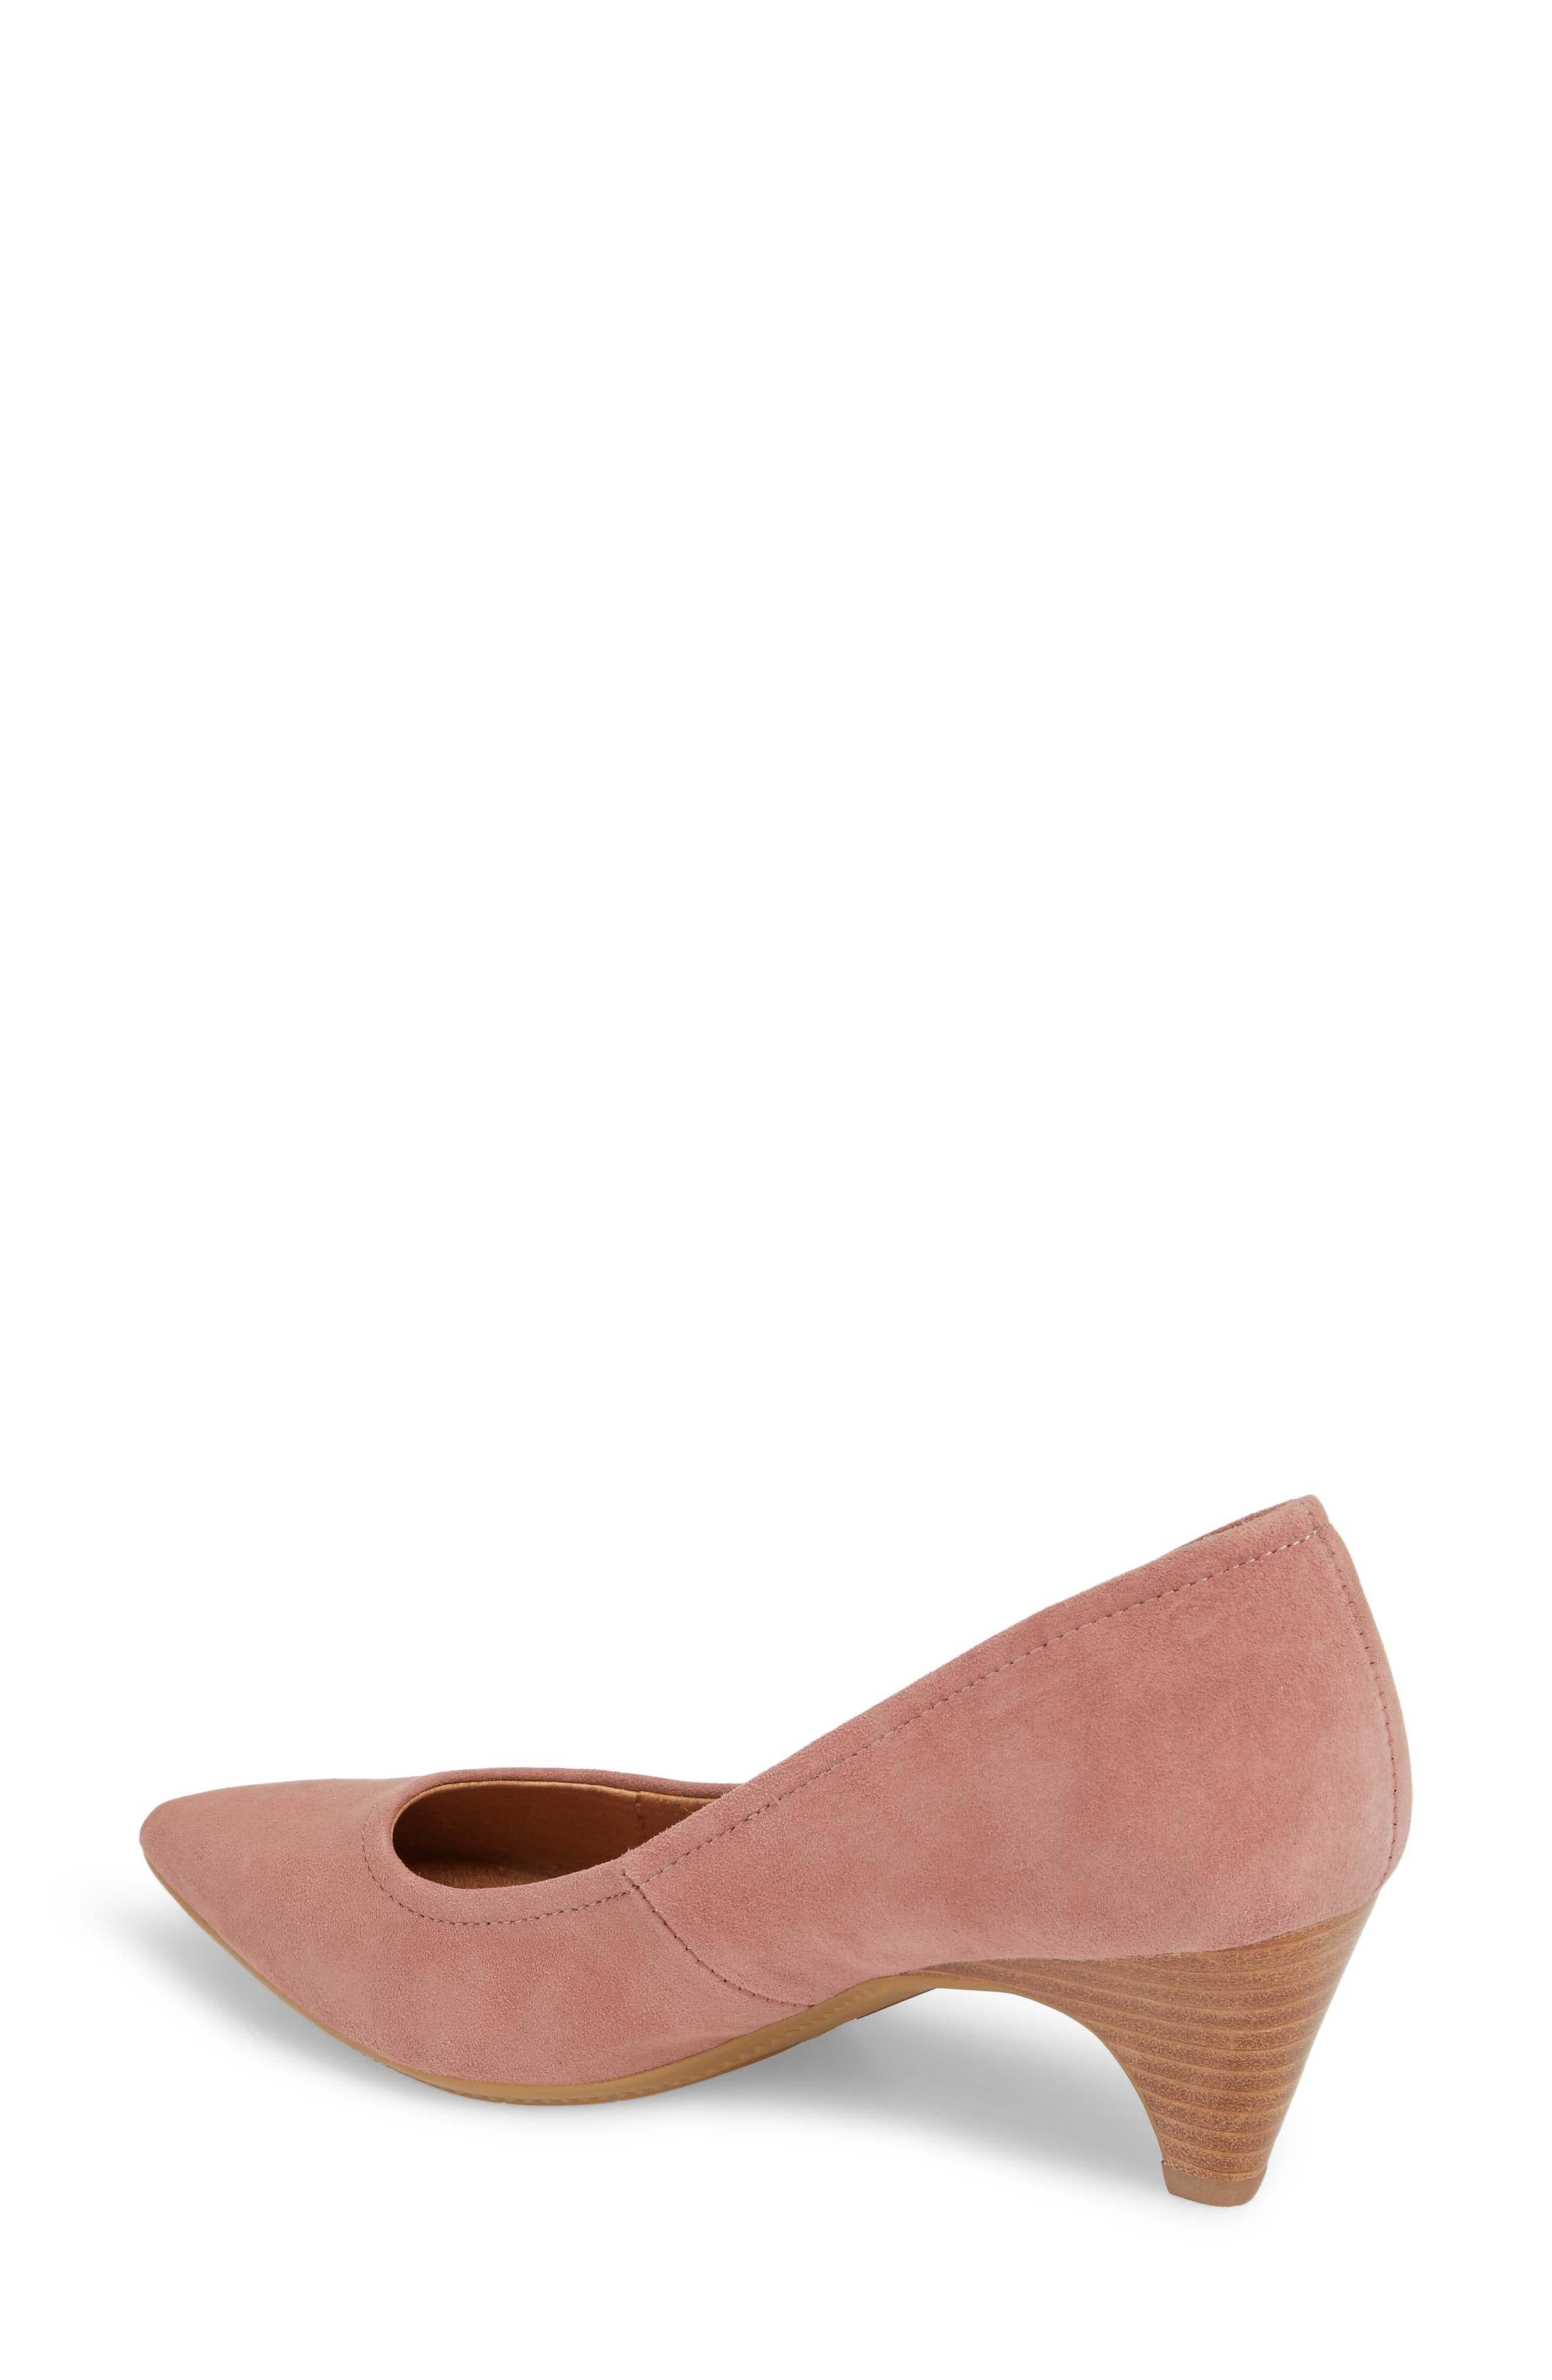 Altessa II Pump,                             Alternate thumbnail 2, color,                             MULBERRY SUEDE